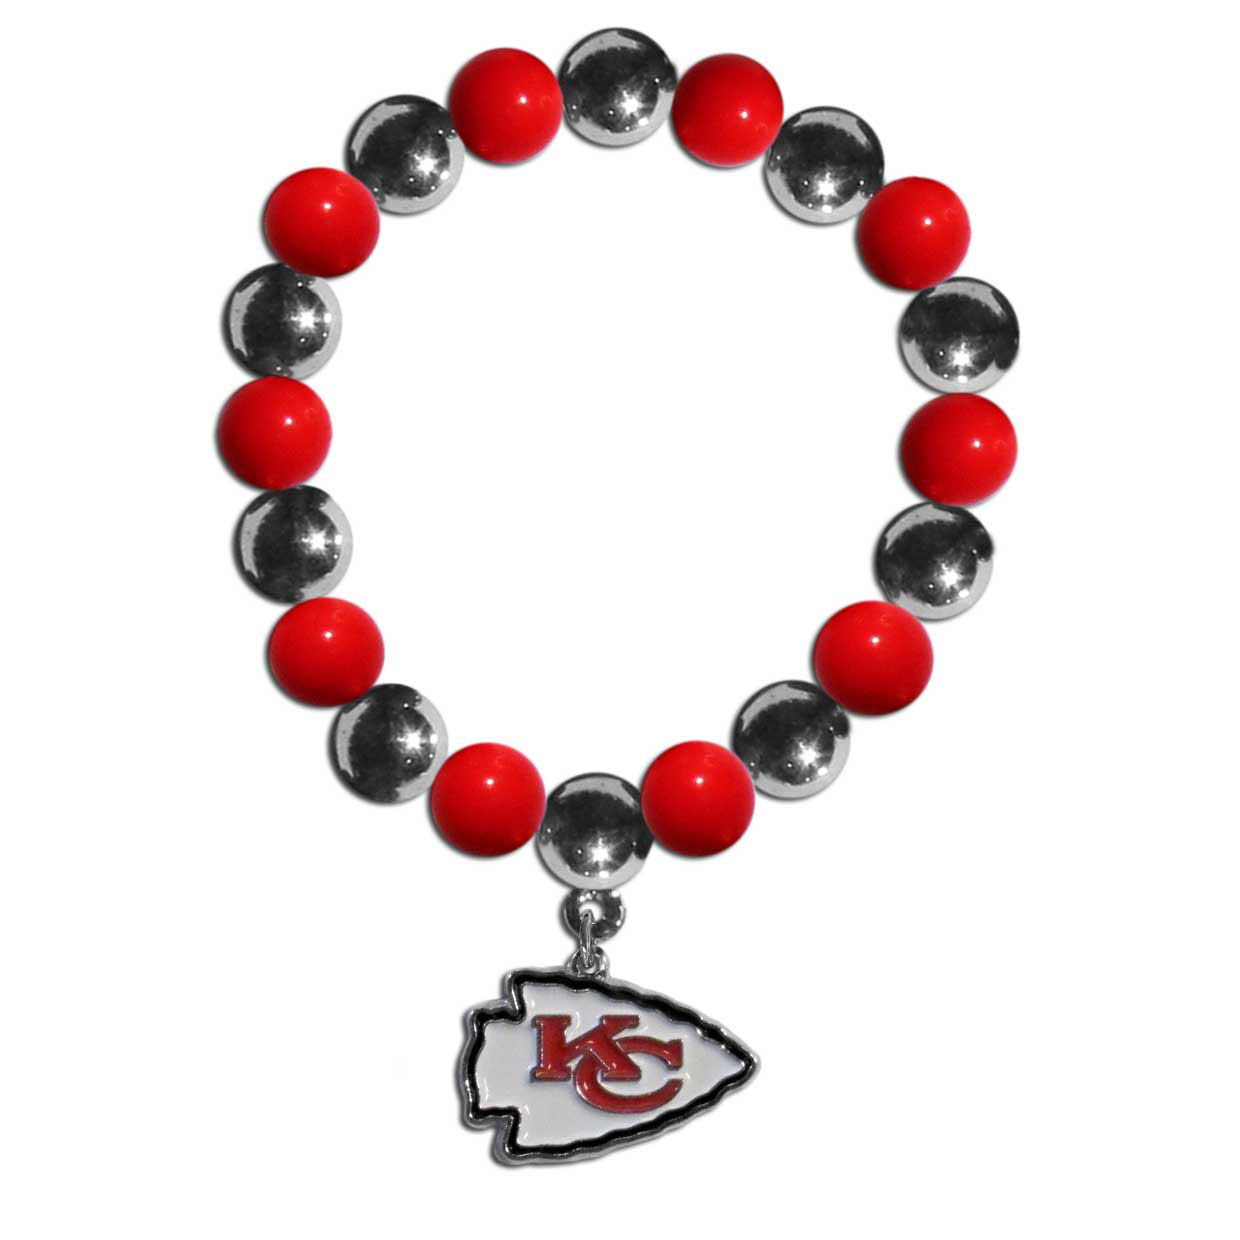 Kansas City Chiefs Chrome Bead Bracelet - Flash your Kansas City Chiefs spirit with this bright stretch bracelet. This new bracelet features alternating charm & team beads on stretch cord with a nickel-free enameled chrome team charm. This bracelet adds the perfect pop of color to your game day accessories.